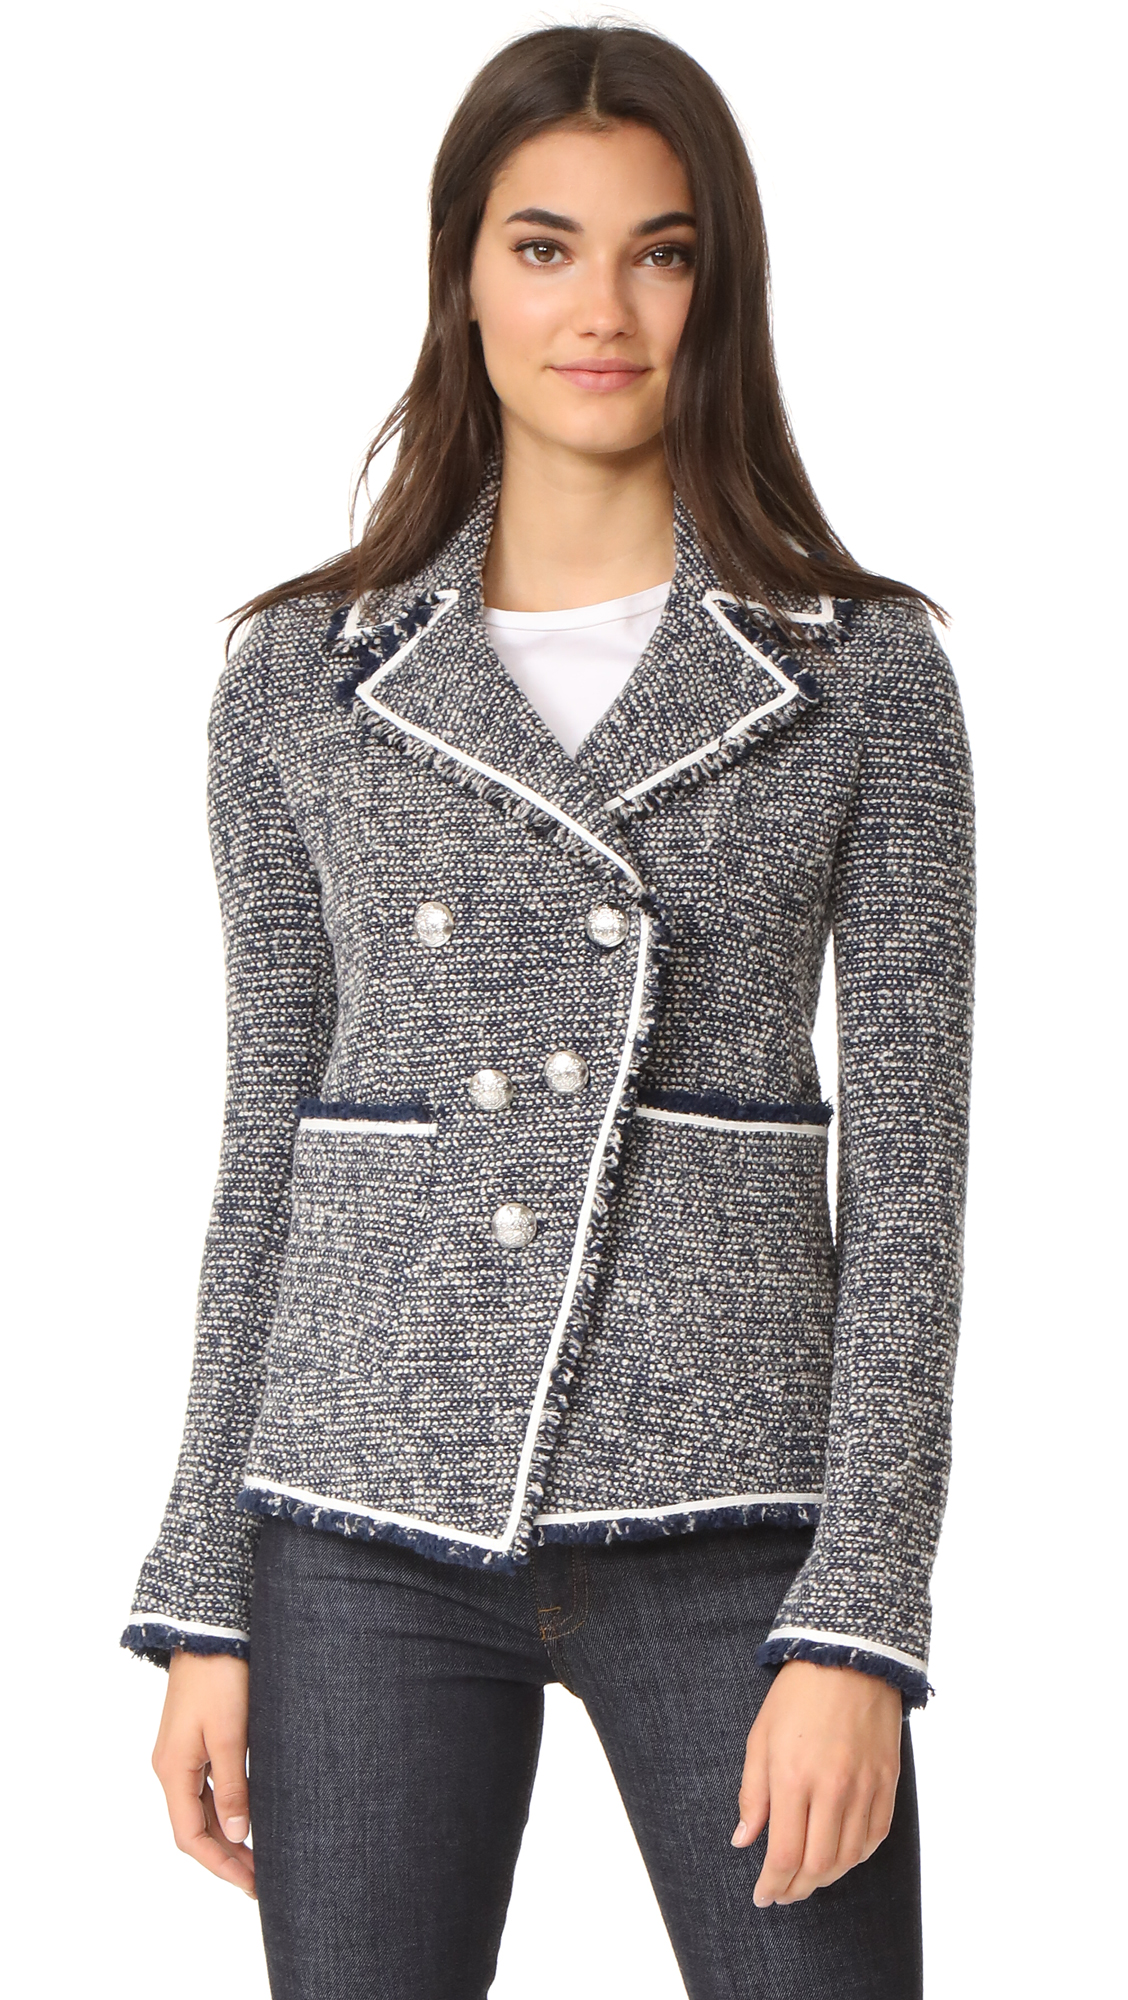 Veronica Beard Carroll Portrait Neckline Jacket - Grey